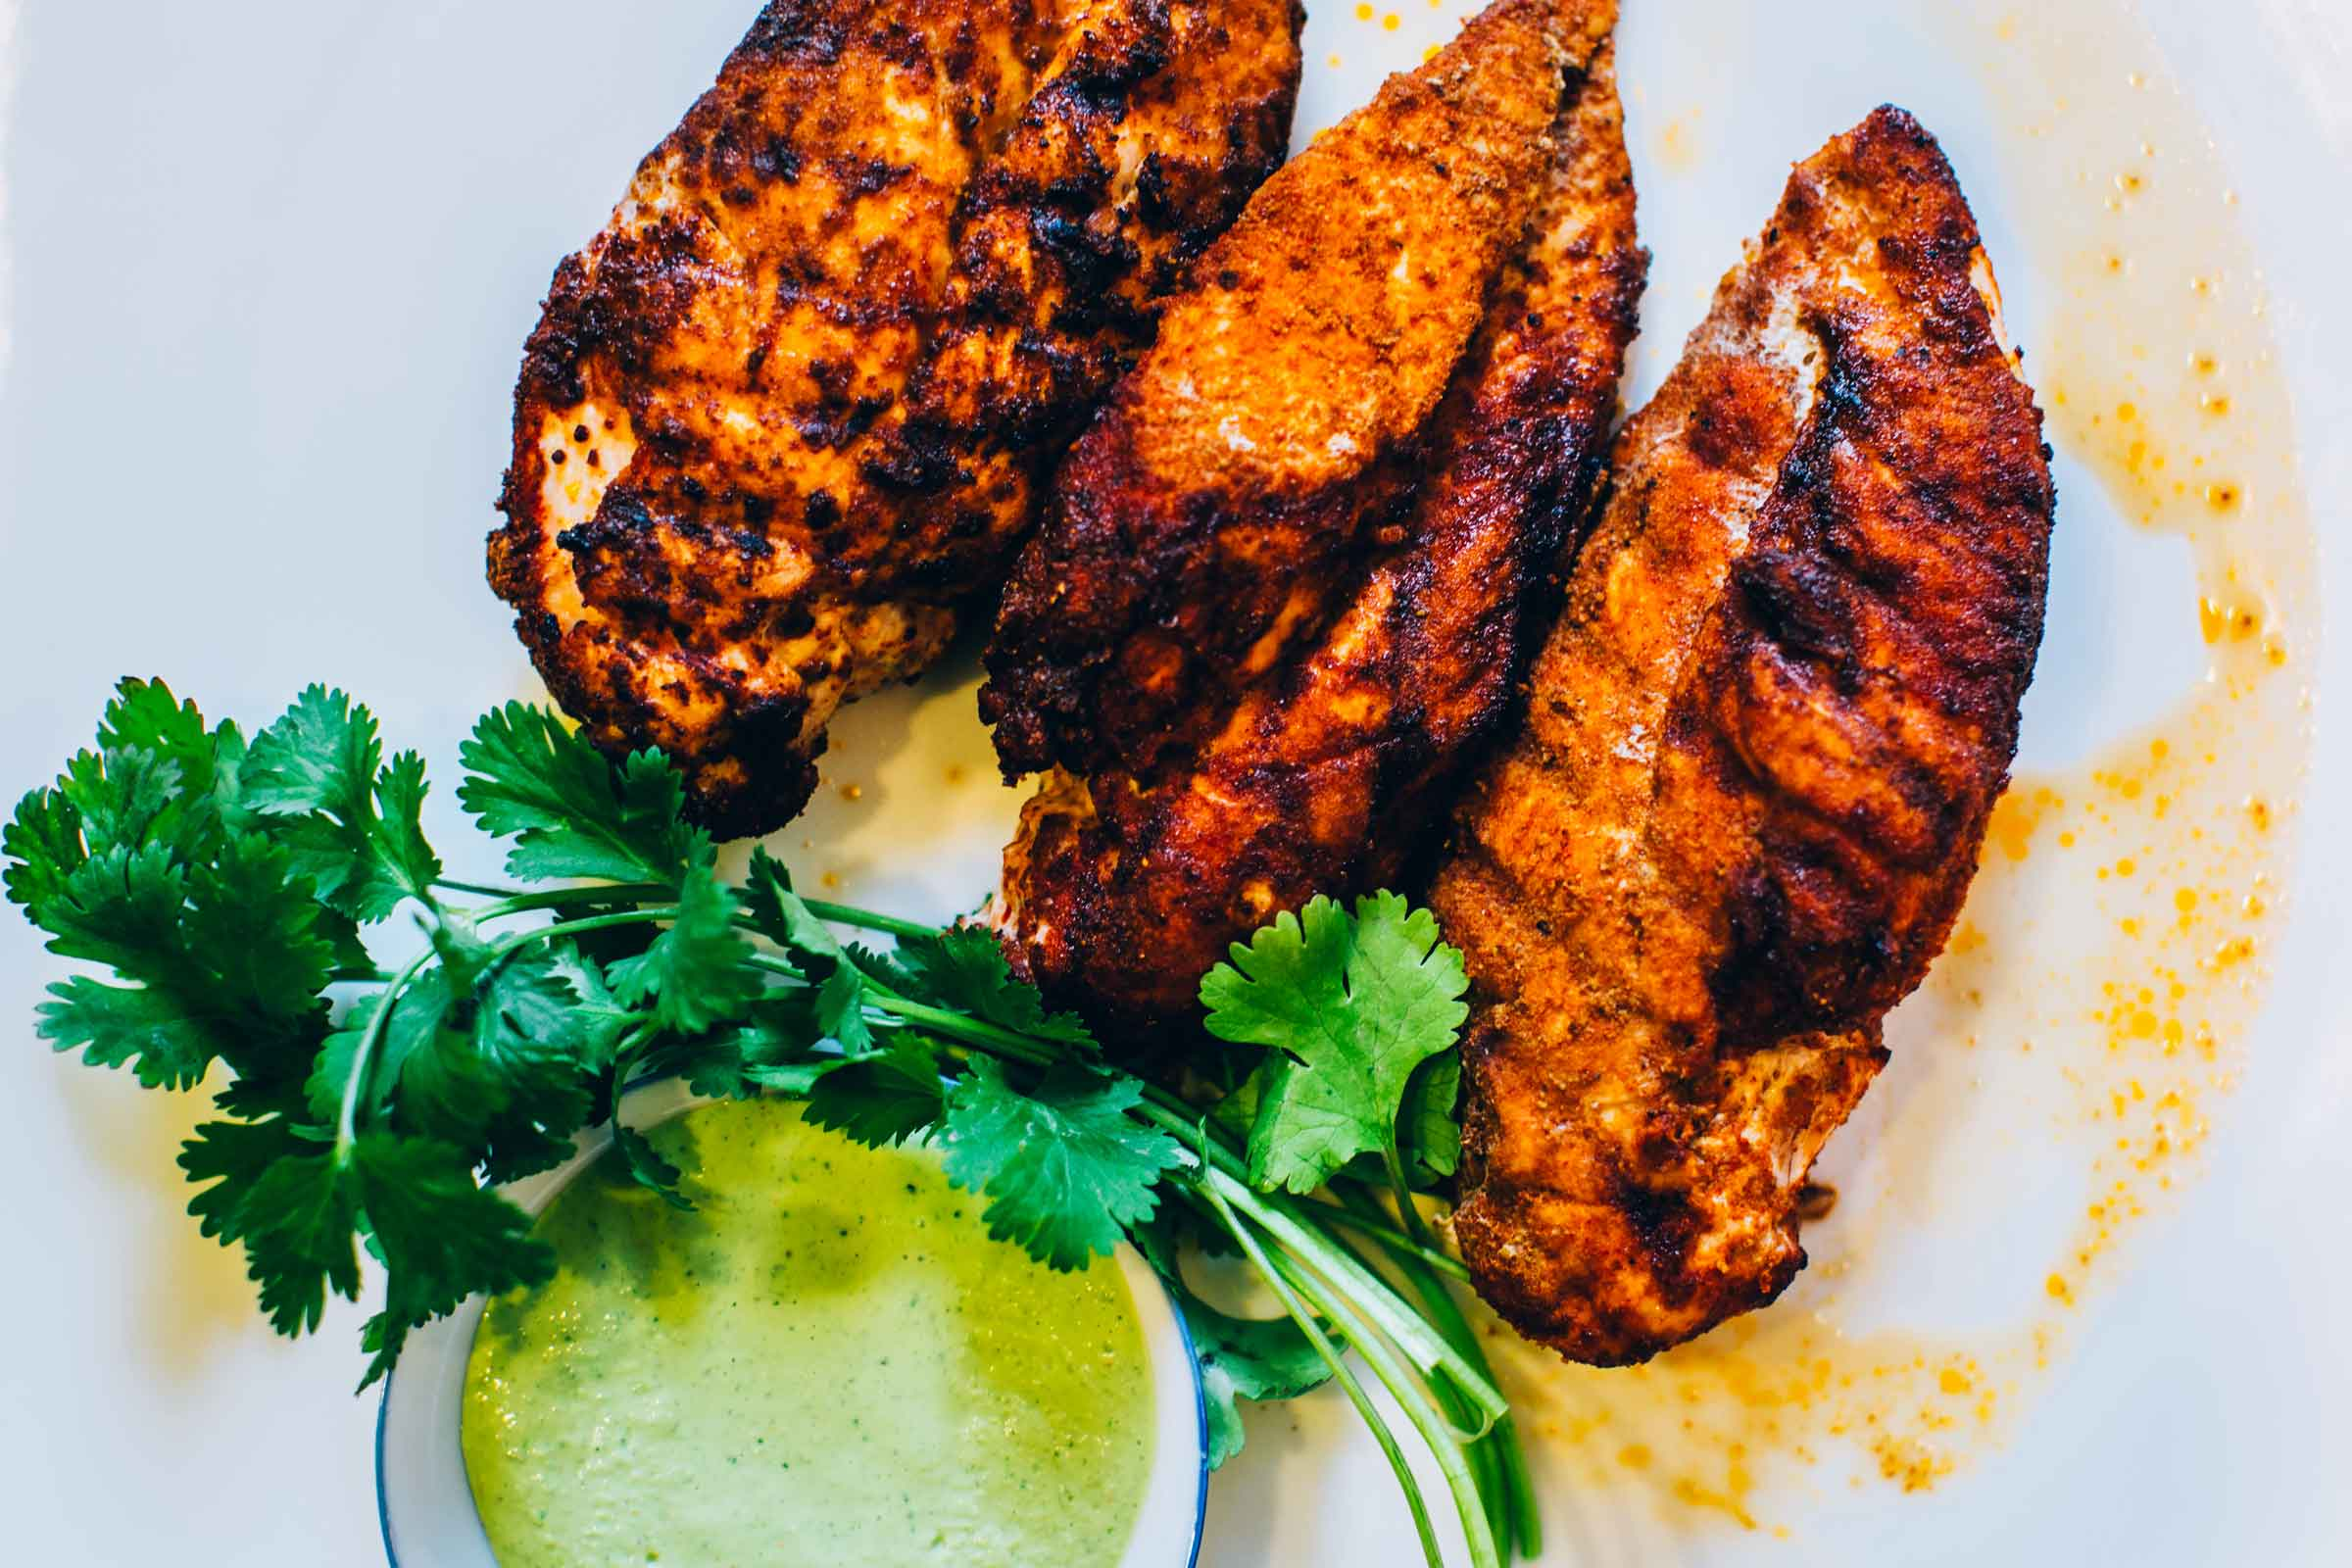 grilled zesty chicken with cilantro vegan ranch dipping sauce